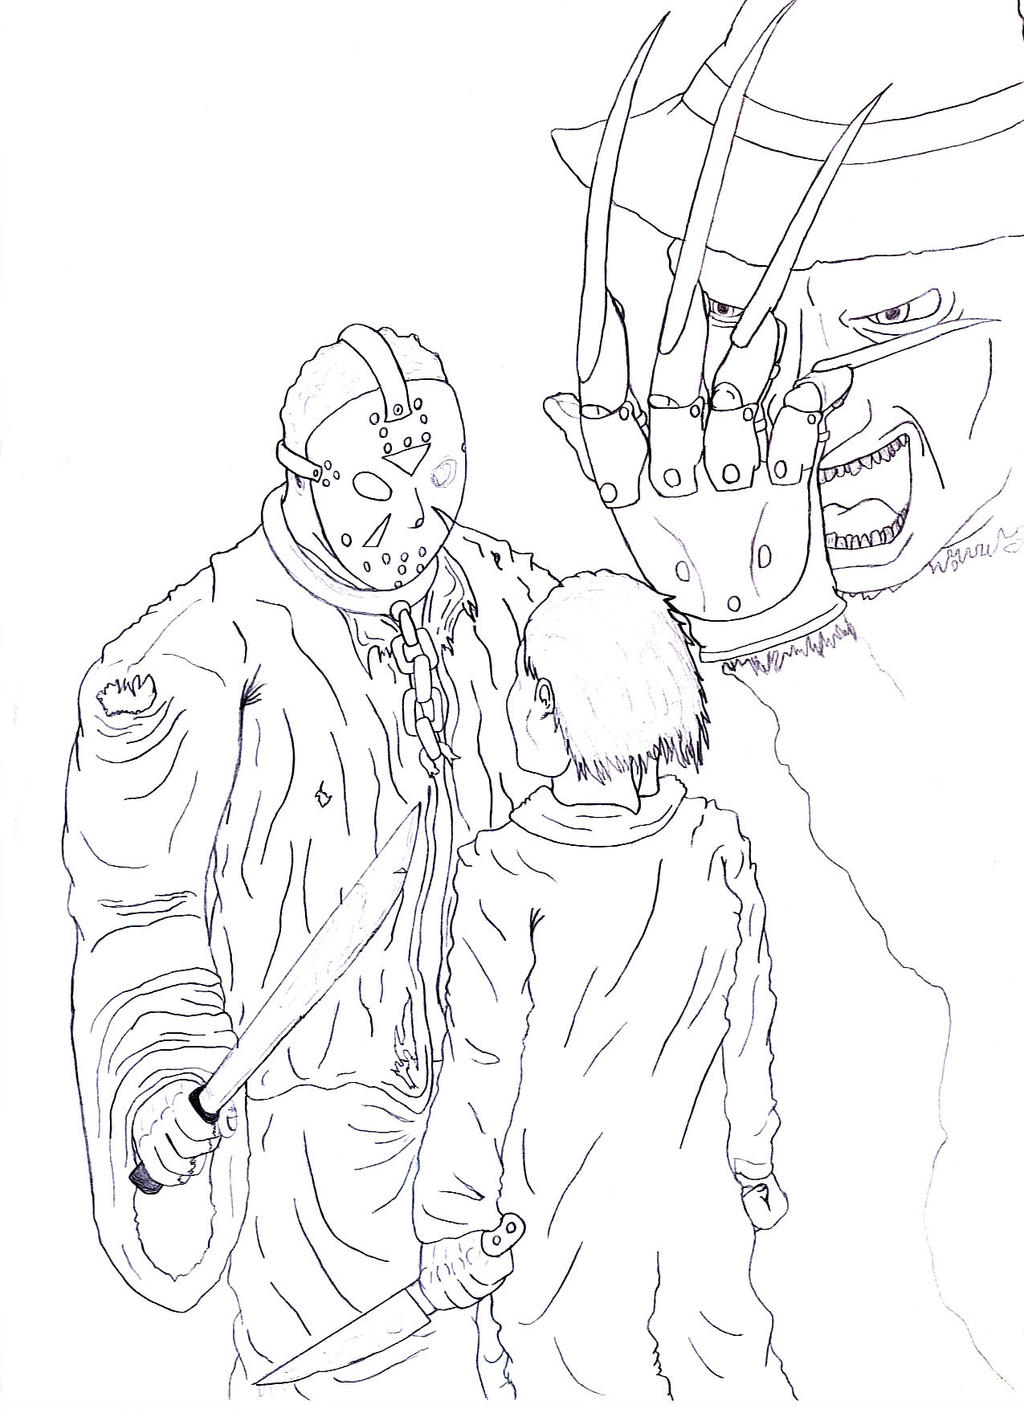 Free jason voorhees coloring pages download